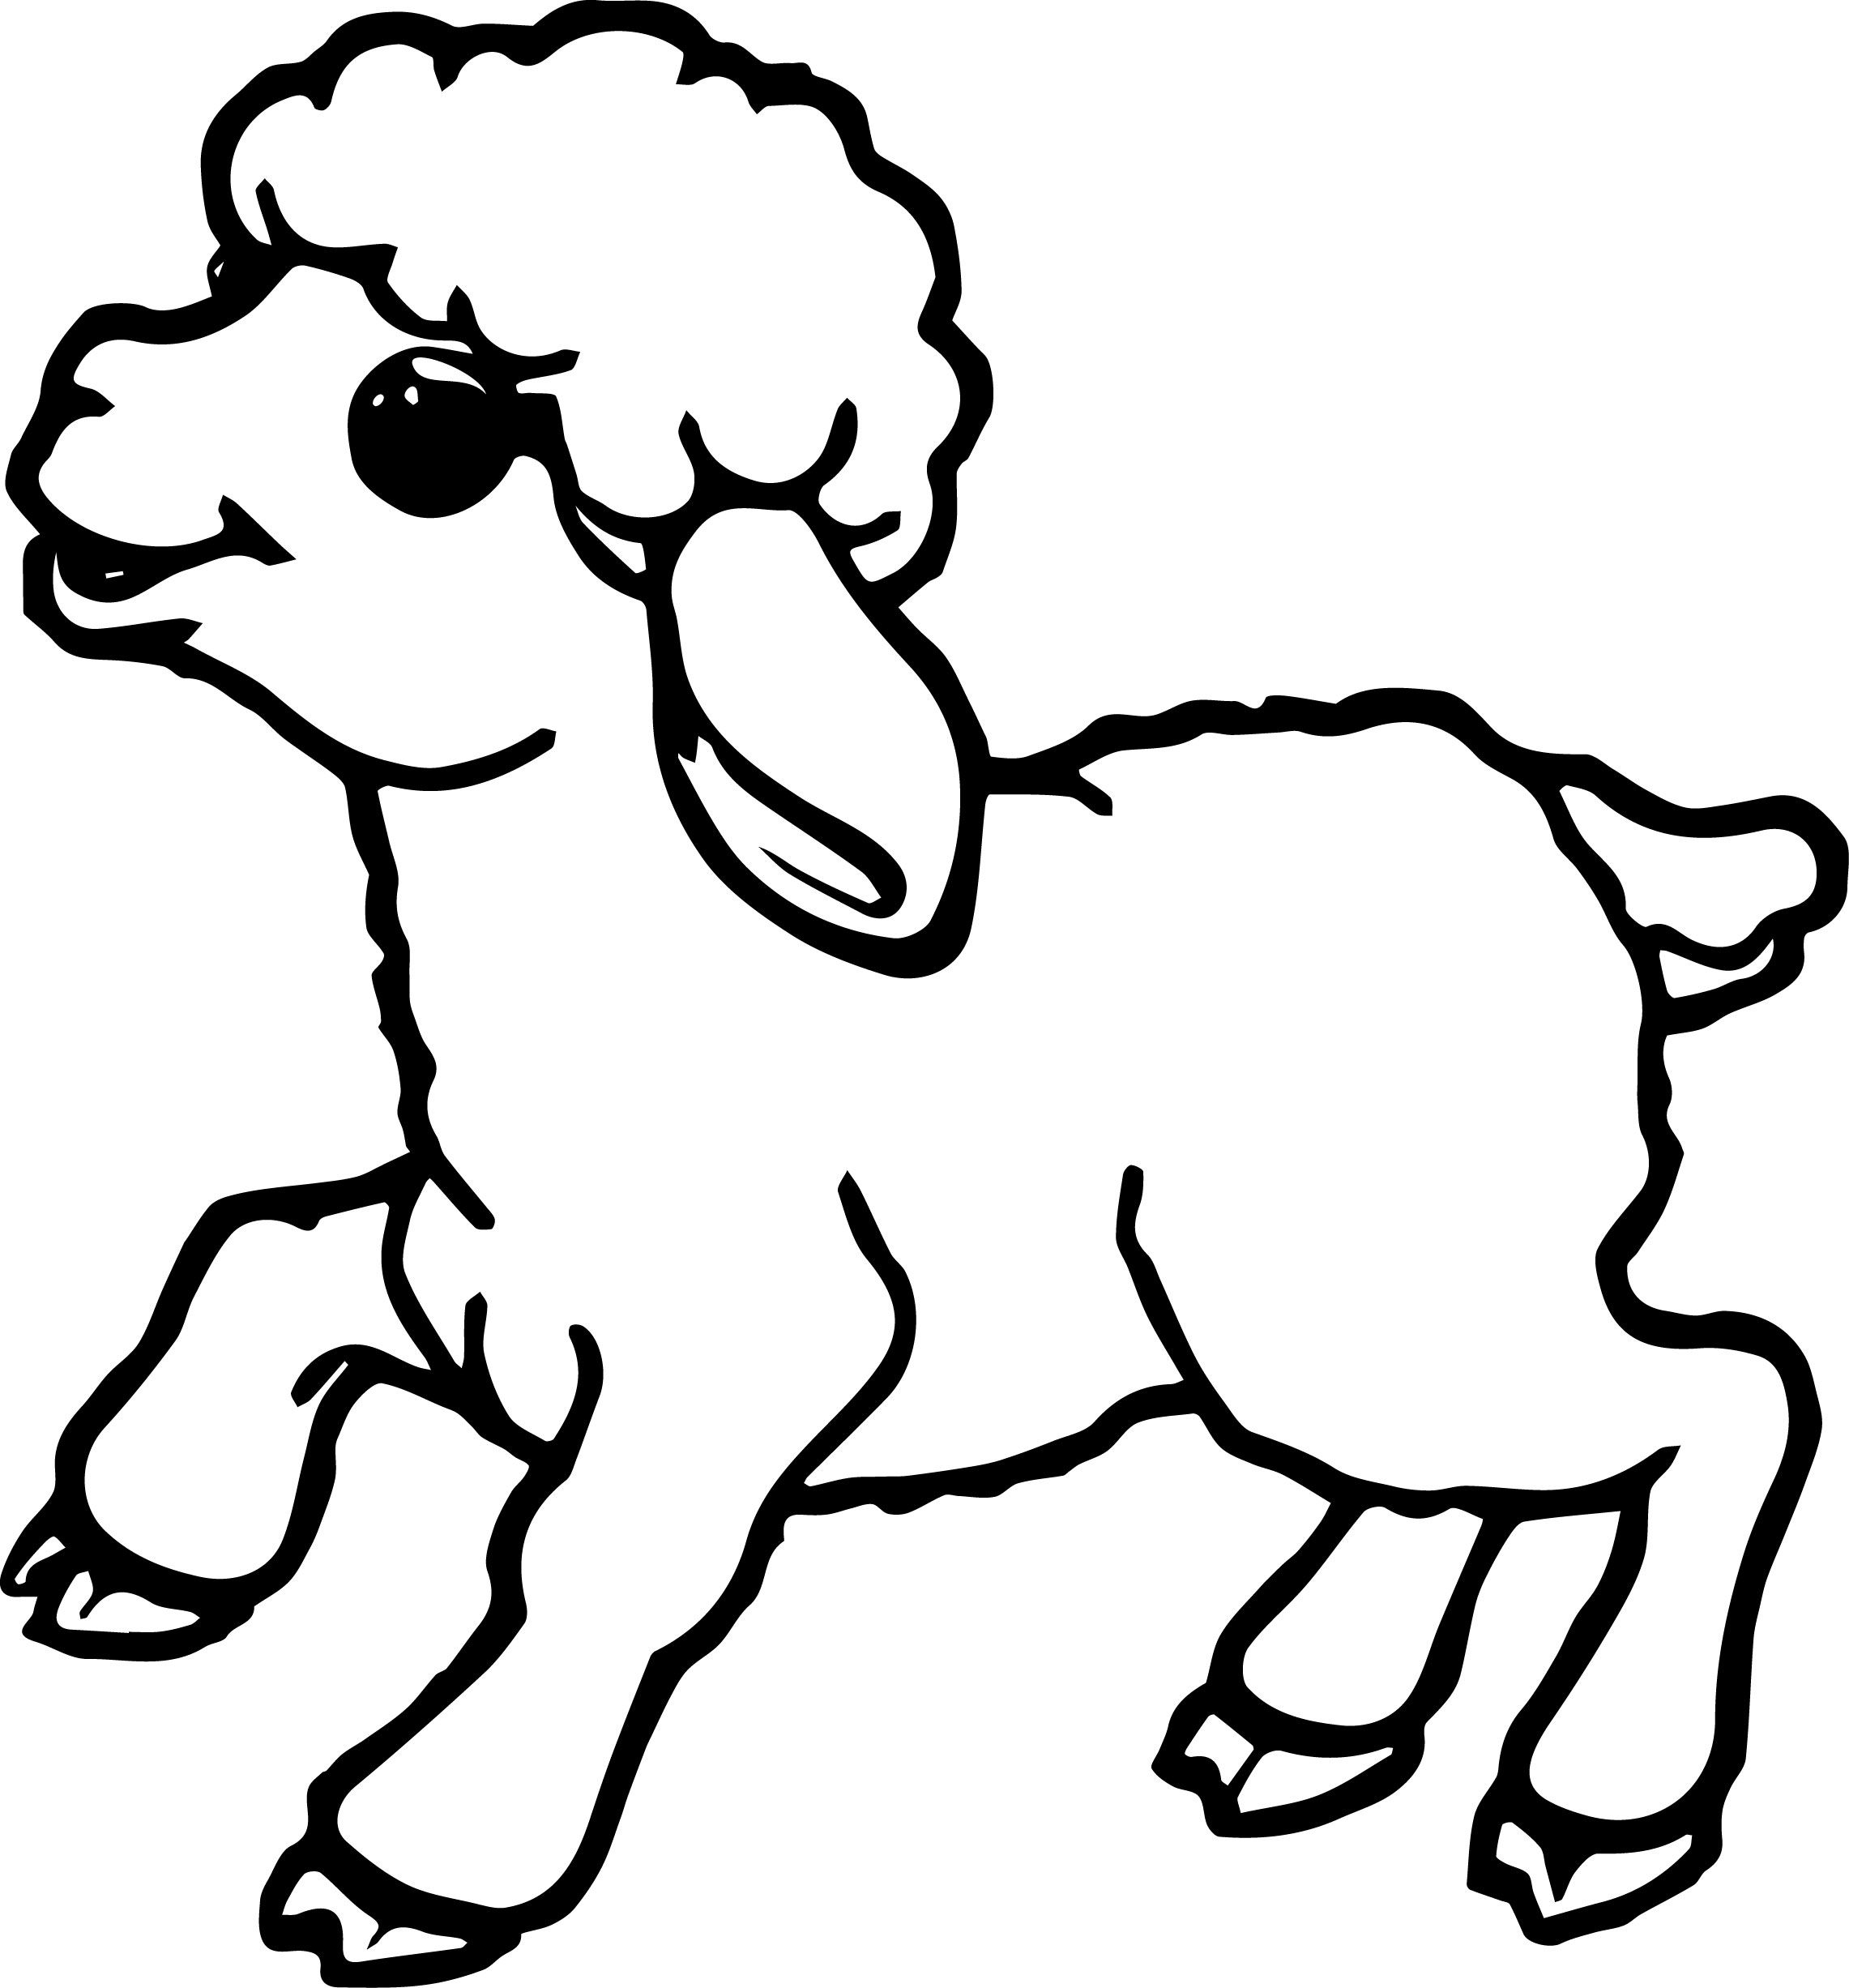 sheep coloring page - sheep outline coloring page